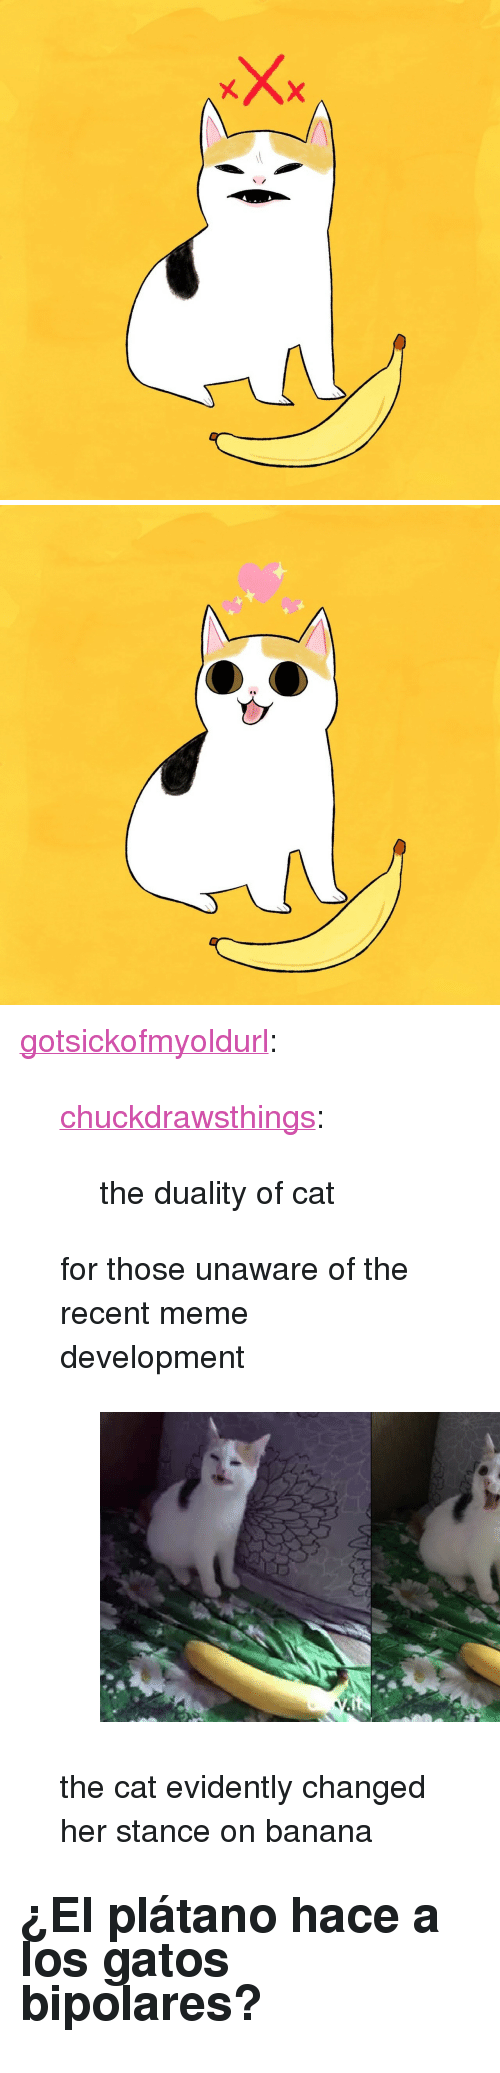 "evidently: <p><a href=""http://gotsickofmyoldurl.tumblr.com/post/170800701101/chuckdrawsthings-the-duality-of-cat-for-those"" class=""tumblr_blog"">gotsickofmyoldurl</a>:</p><blockquote> <p><a href=""http://chuckdrawsthings.tumblr.com/post/170693393843/the-duality-of-cat"" class=""tumblr_blog"">chuckdrawsthings</a>:</p> <blockquote><p>the duality of cat</p></blockquote> <p>for those unaware of the recent meme development</p> <figure class=""tmblr-full"" data-orig-height=""405"" data-orig-width=""706""><img src=""https://78.media.tumblr.com/c00cff490bb25f6a54b67ddab6f53dd2/tumblr_inline_p41q1gu4rm1qi1nux_540.png"" data-orig-height=""405"" data-orig-width=""706""/></figure><p>the cat evidently changed her stance on banana</p> </blockquote> <h2>¿El plátano hace a los gatos bipolares?</h2>"